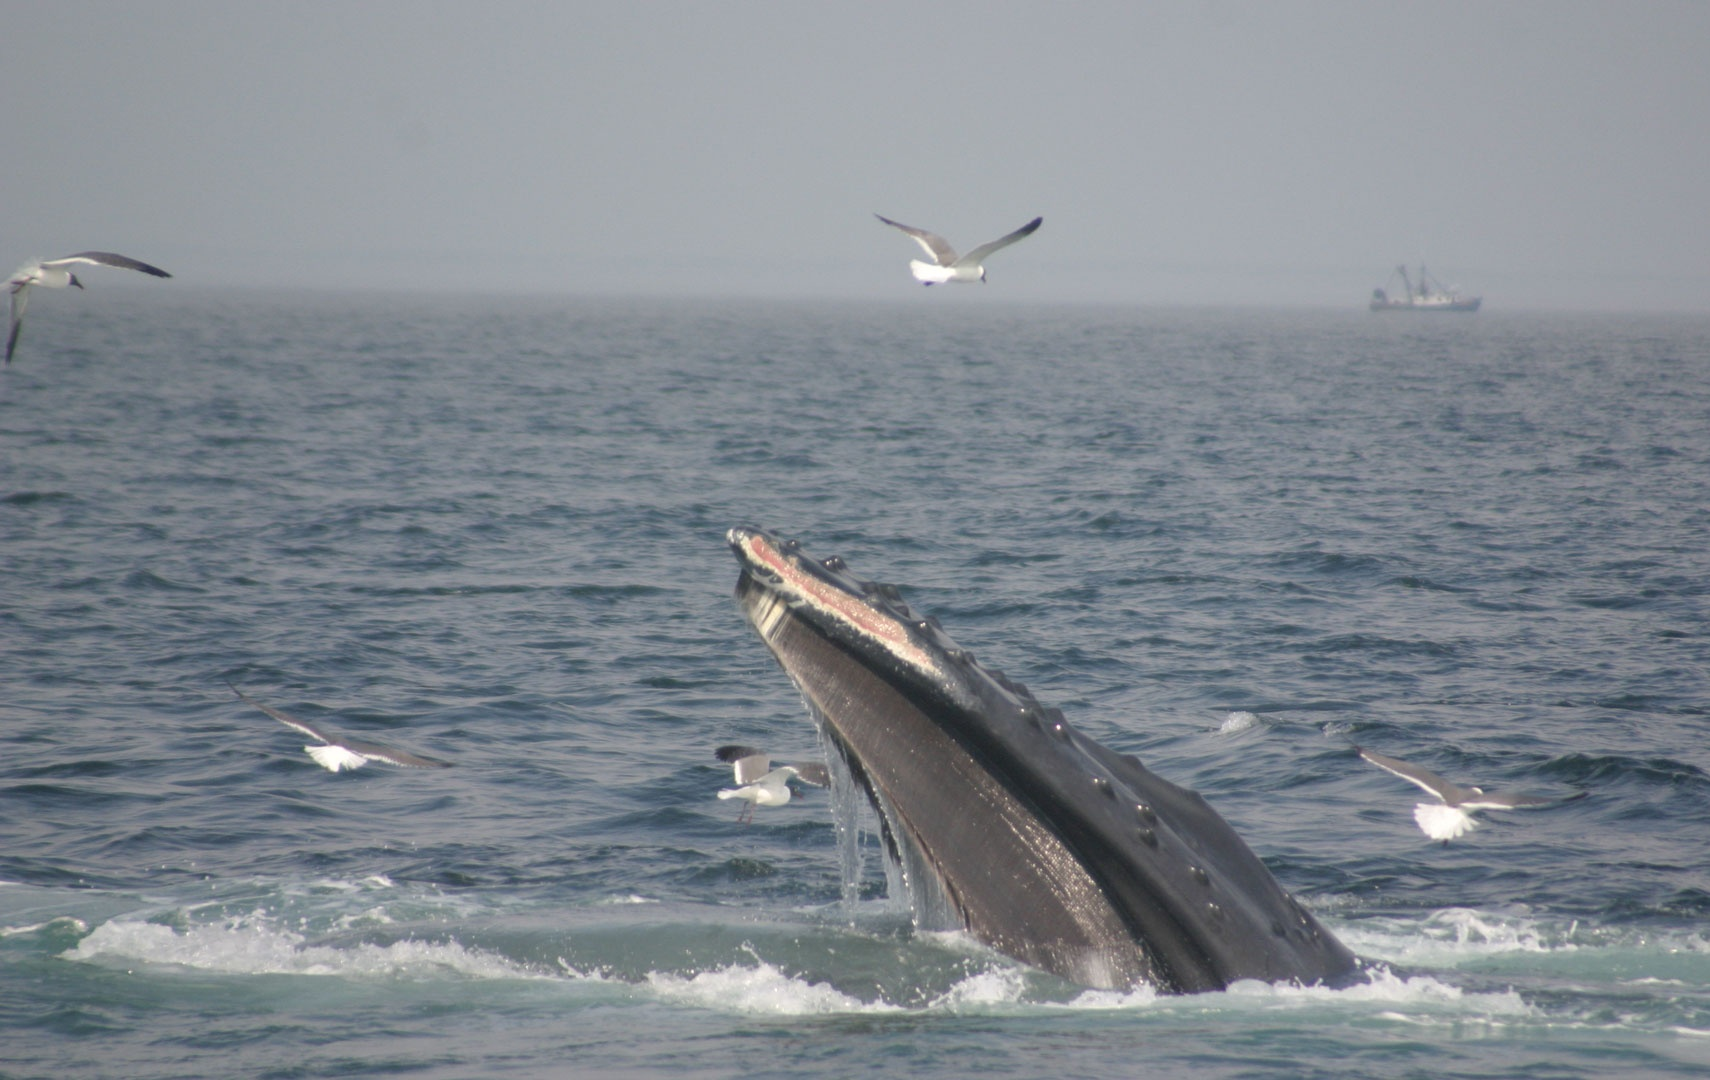 ... of tagged humpback whales in Stellwagen Bank National Marine Sanctuary